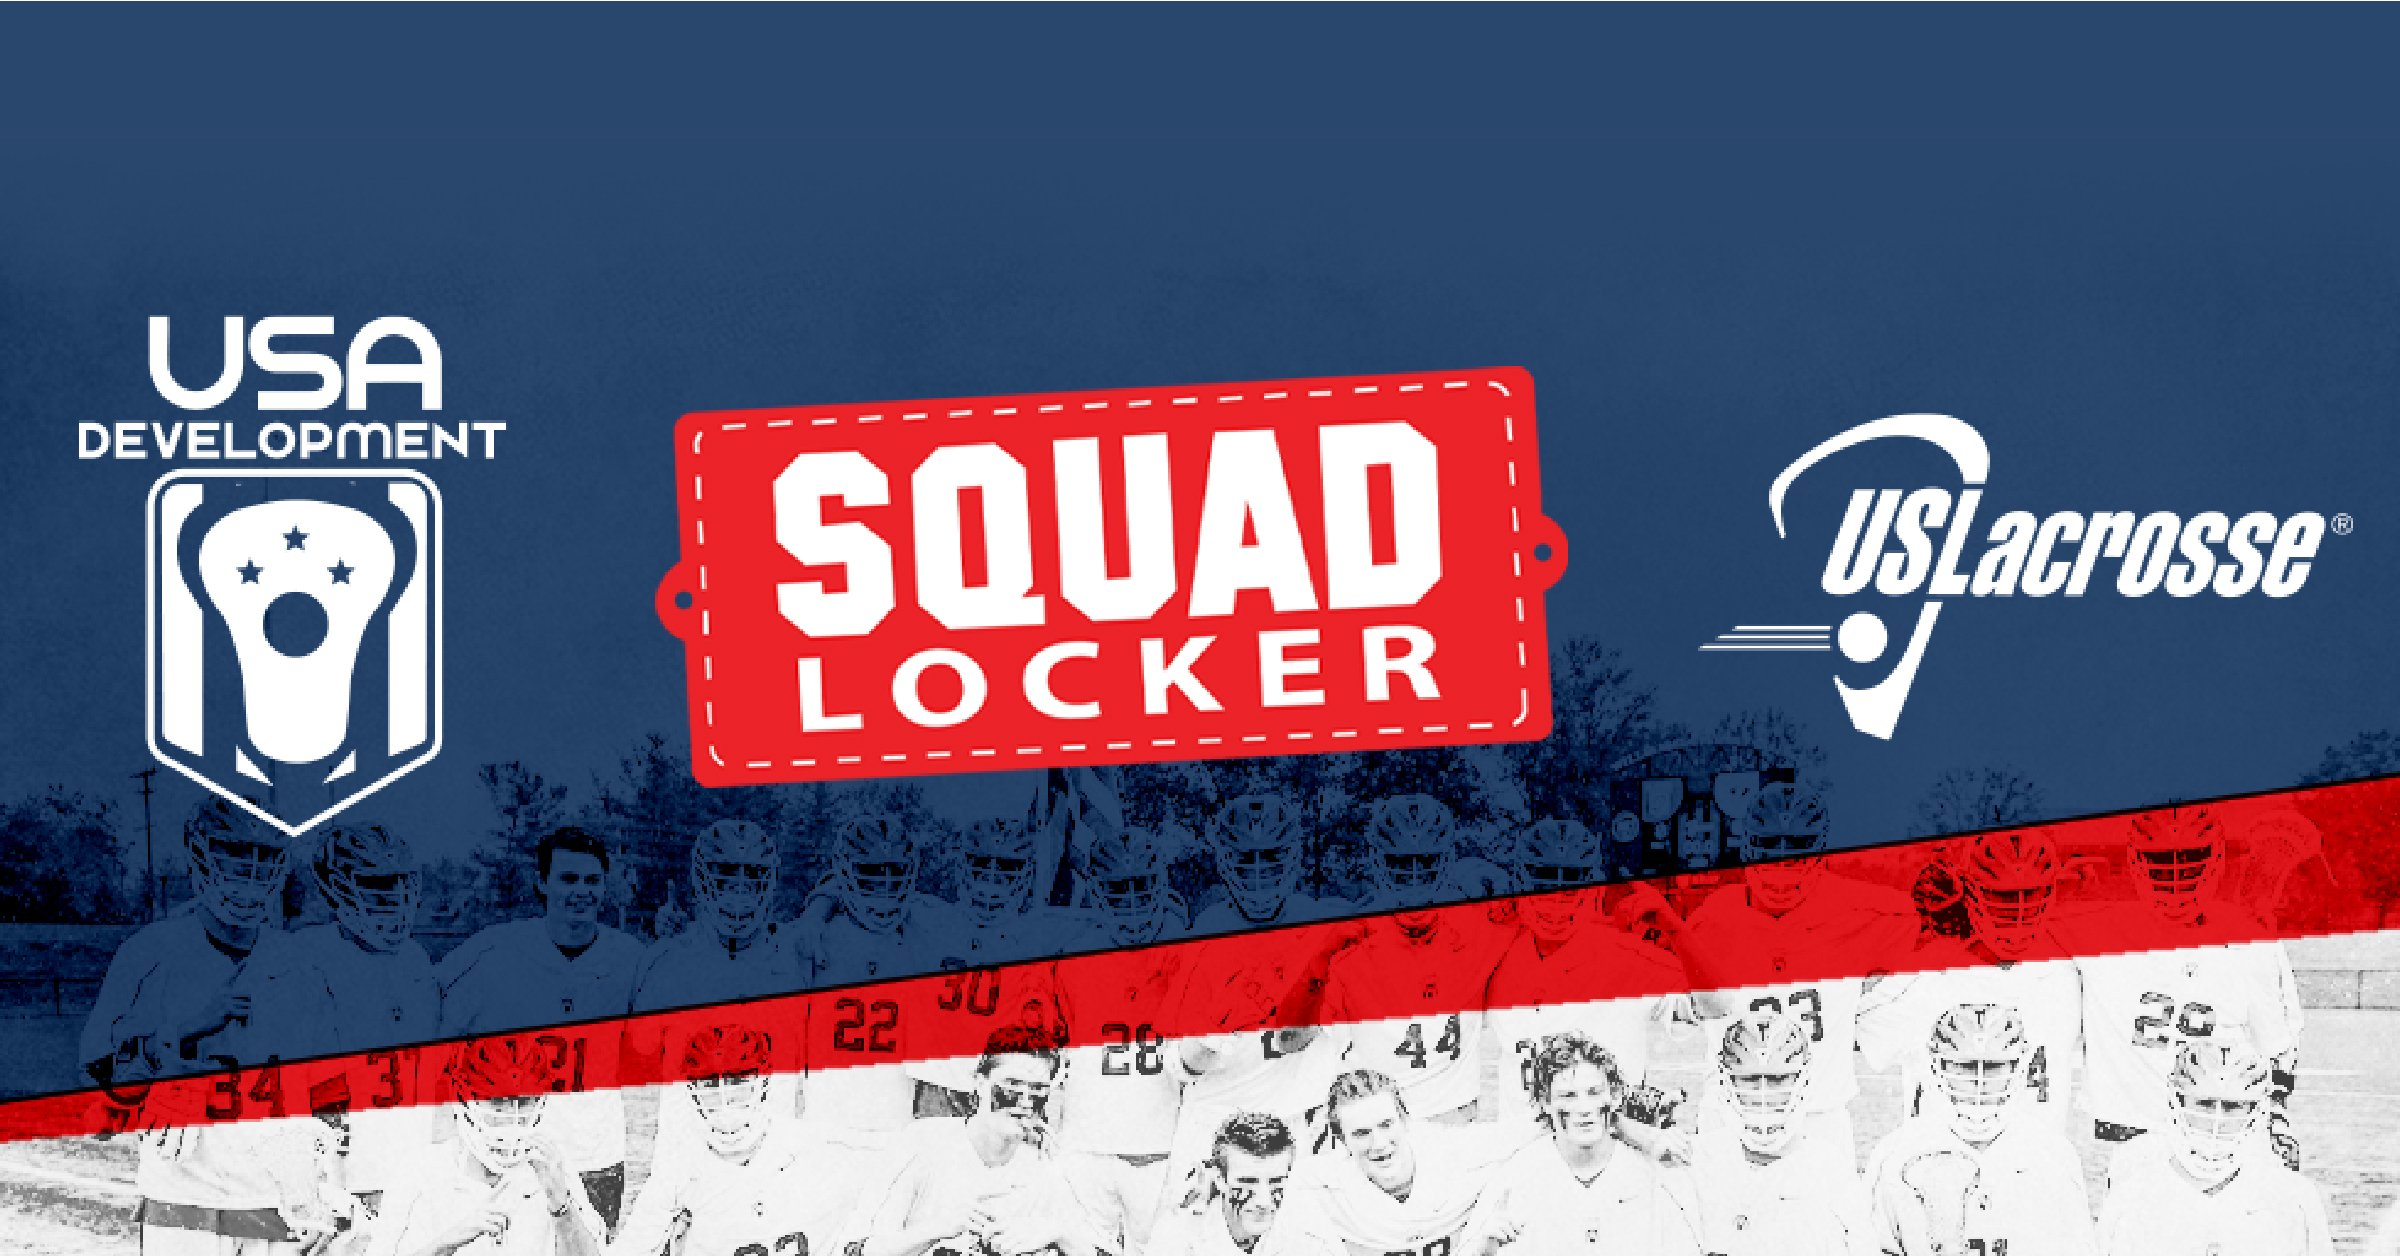 SquadLocker Named as Official Partner of US Lacrosse NTDP